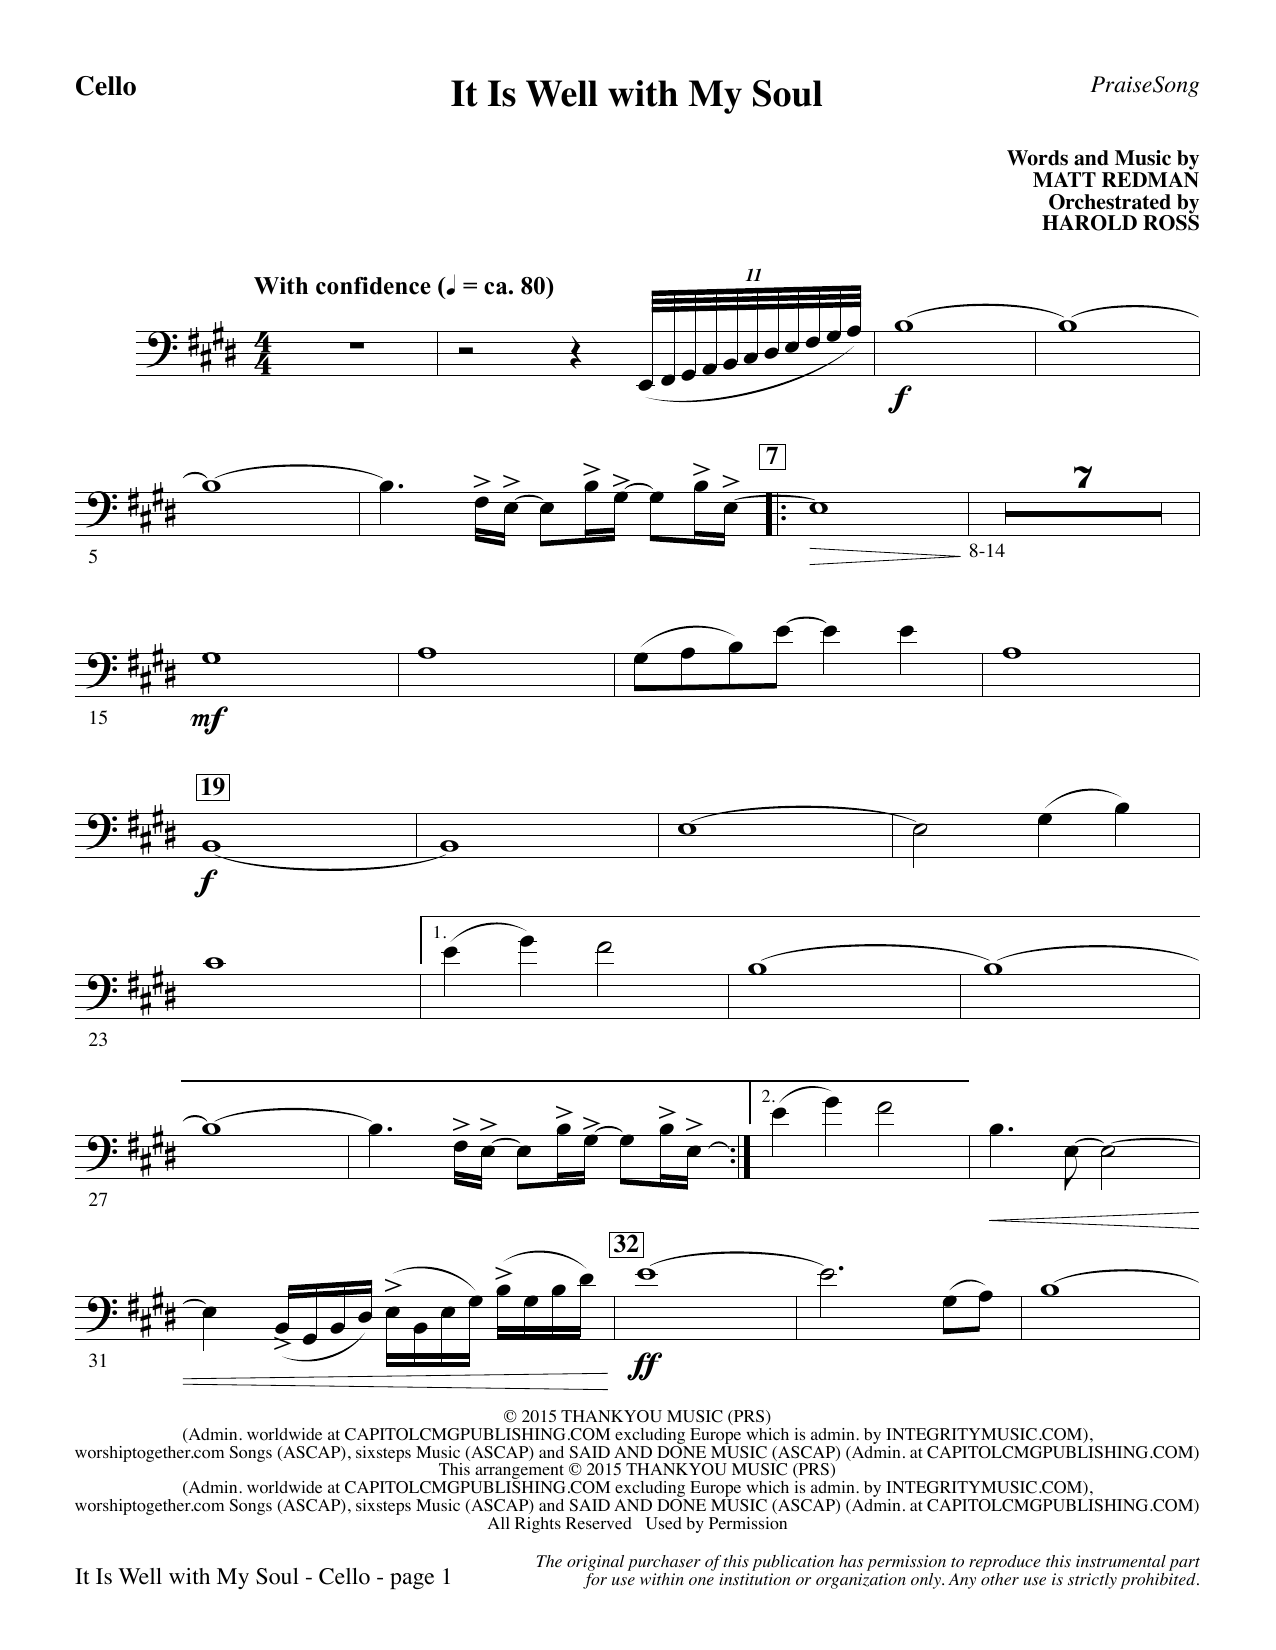 It Is Well with My Soul - Cello Sheet Music